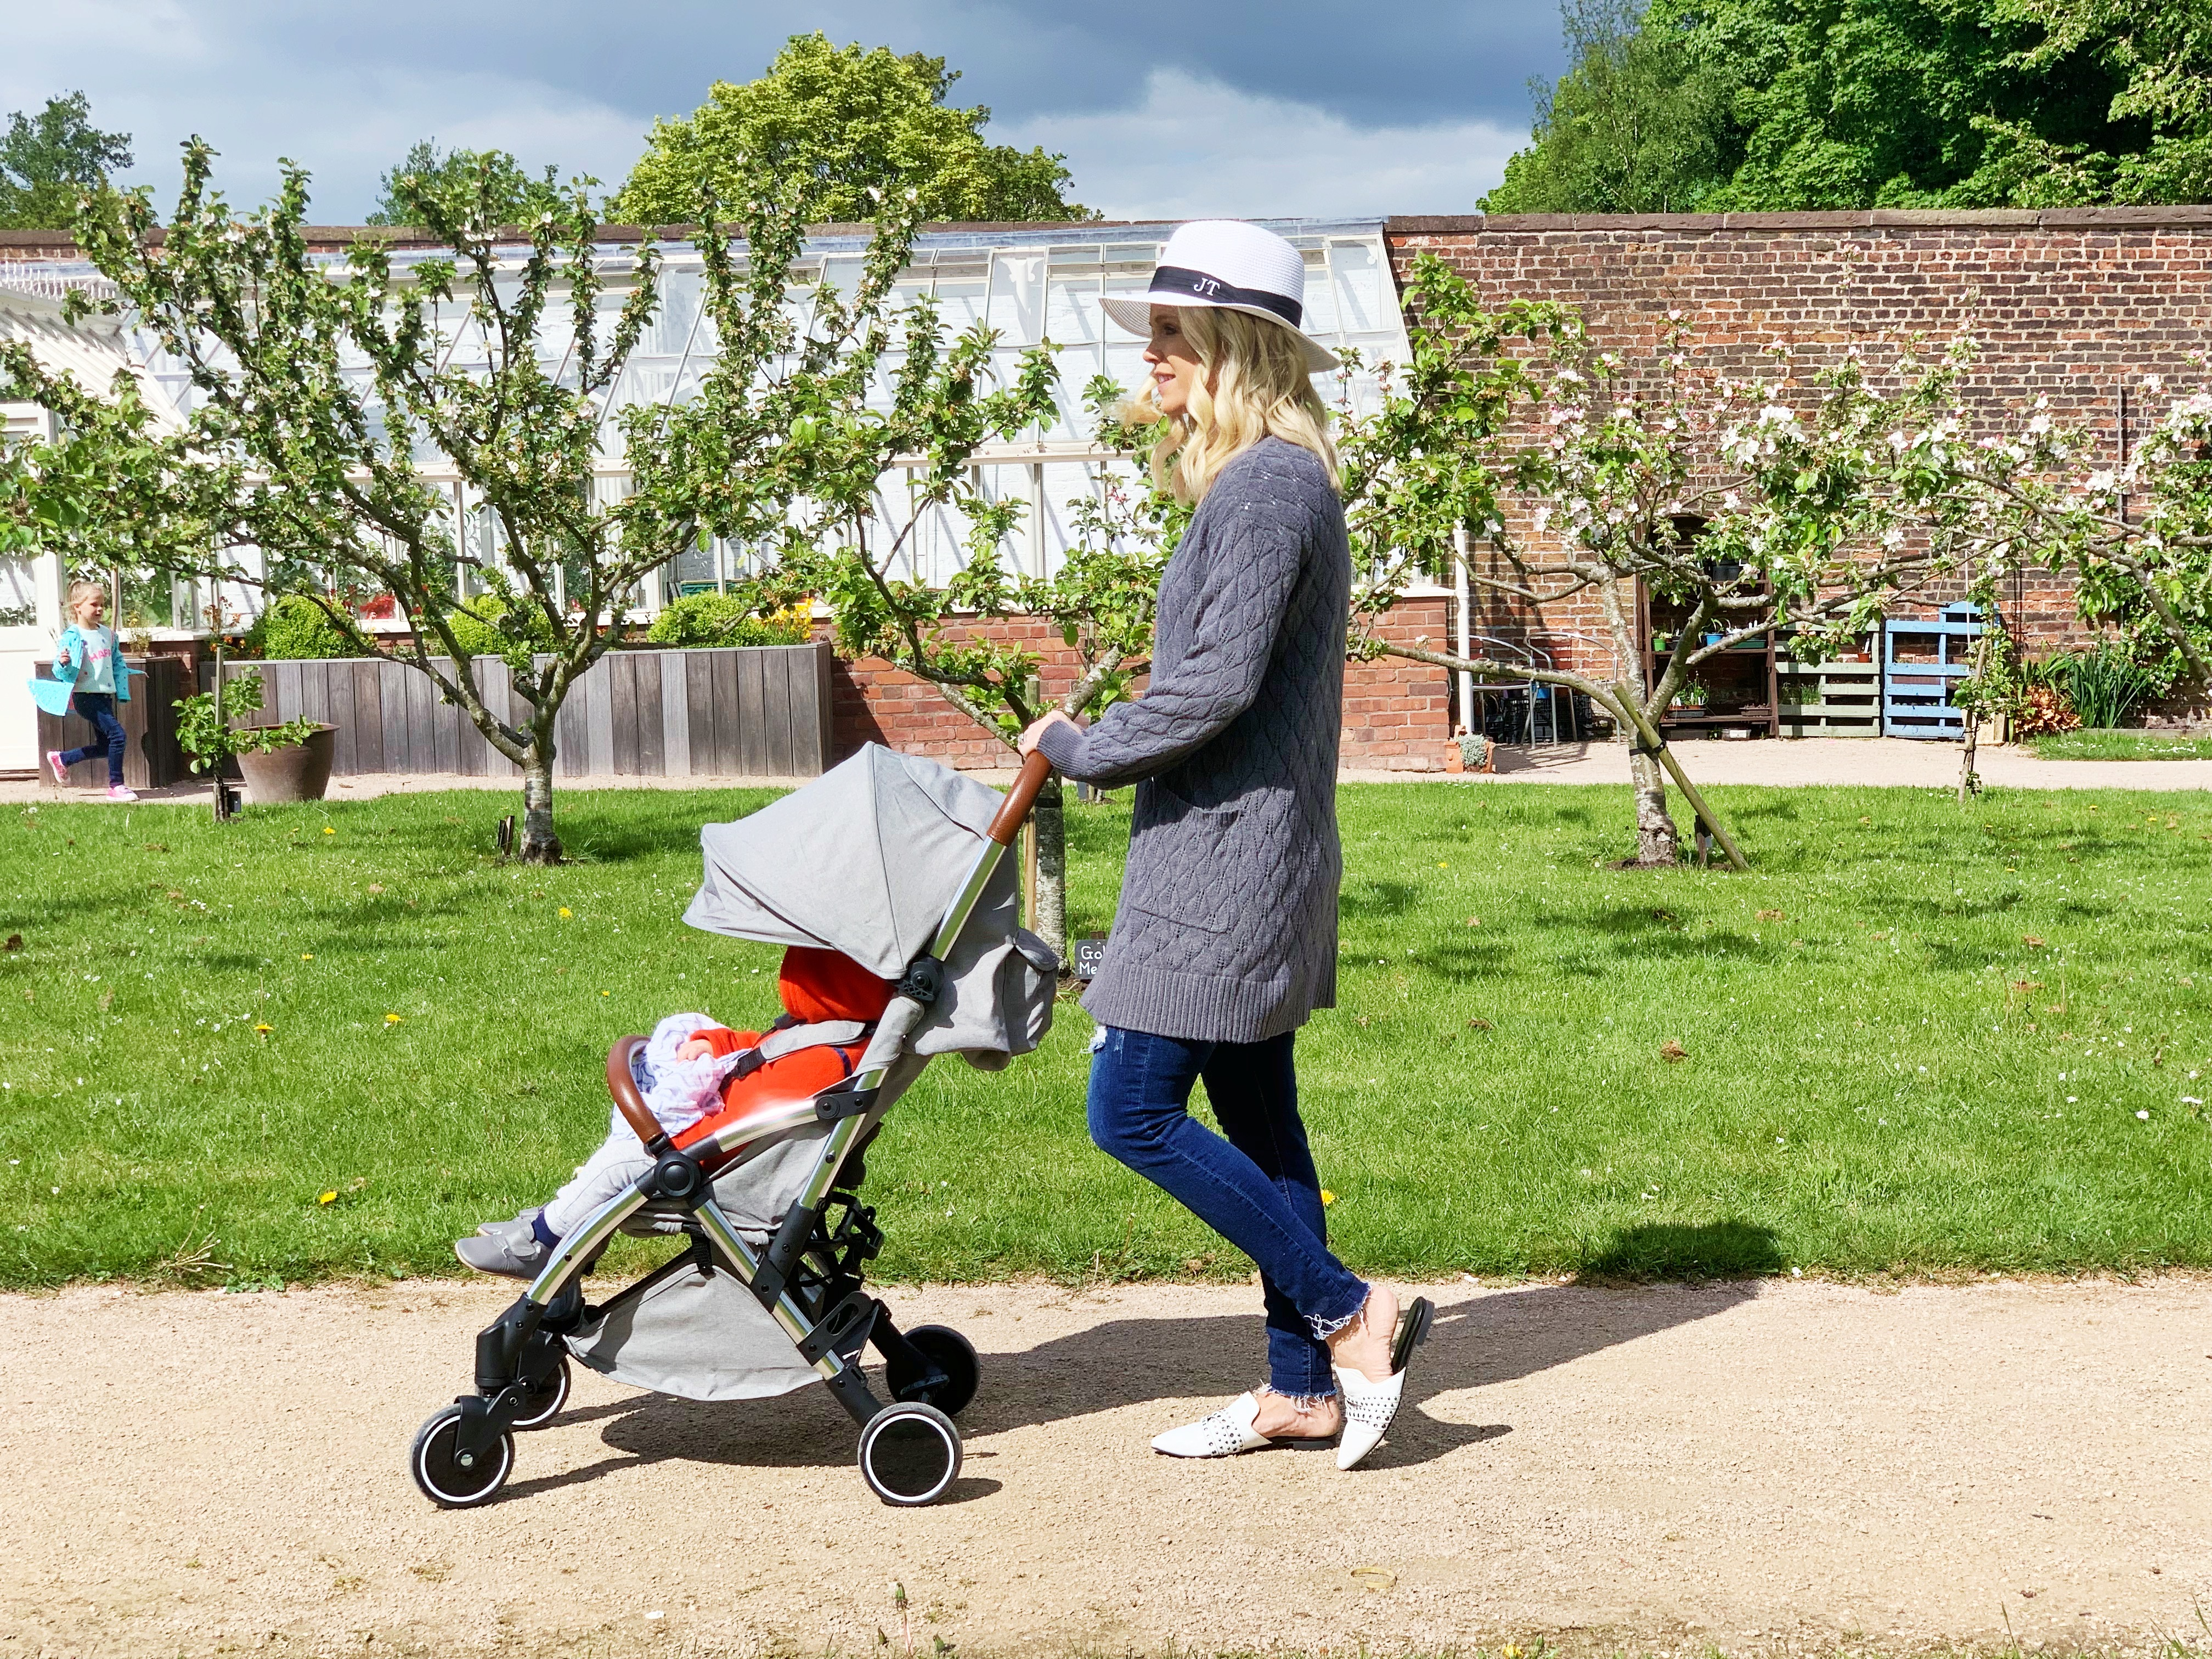 A mother pushing a grey travel stroller in the park. She is wearing a grey cardigan, jeans and a white hat.